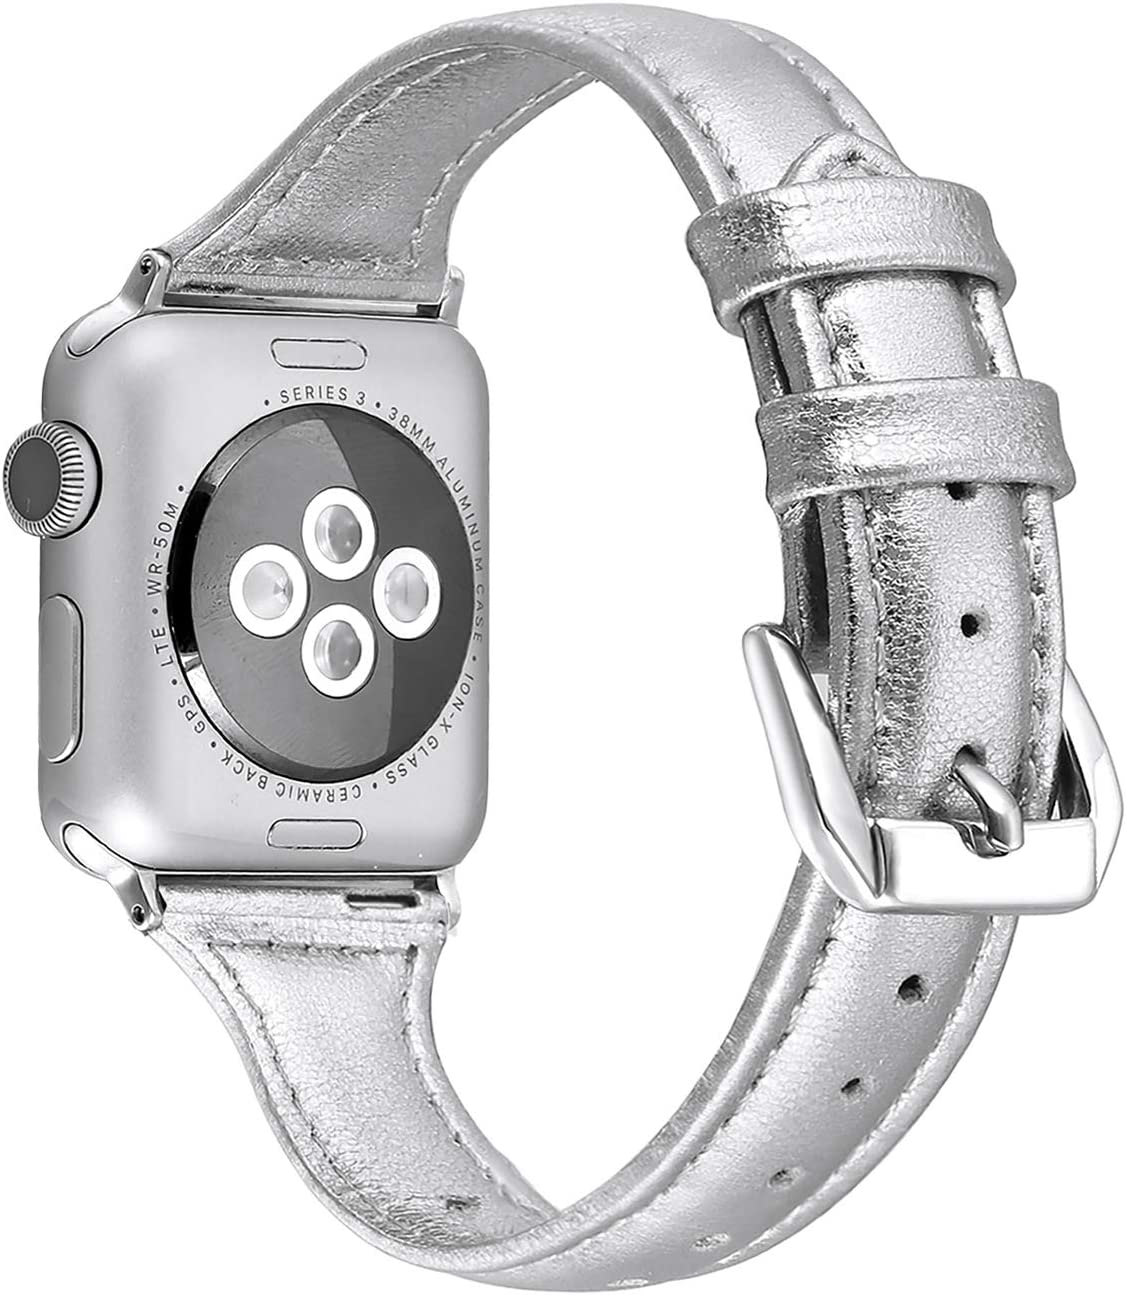 Secbolt Leather Bands Compatible Apple Watch Band 38mm 40mm Iwatch Series 6 5 4 3 2 1 SE Slim Replacement Wristband Strap Stainless Steel Buckle, Silver